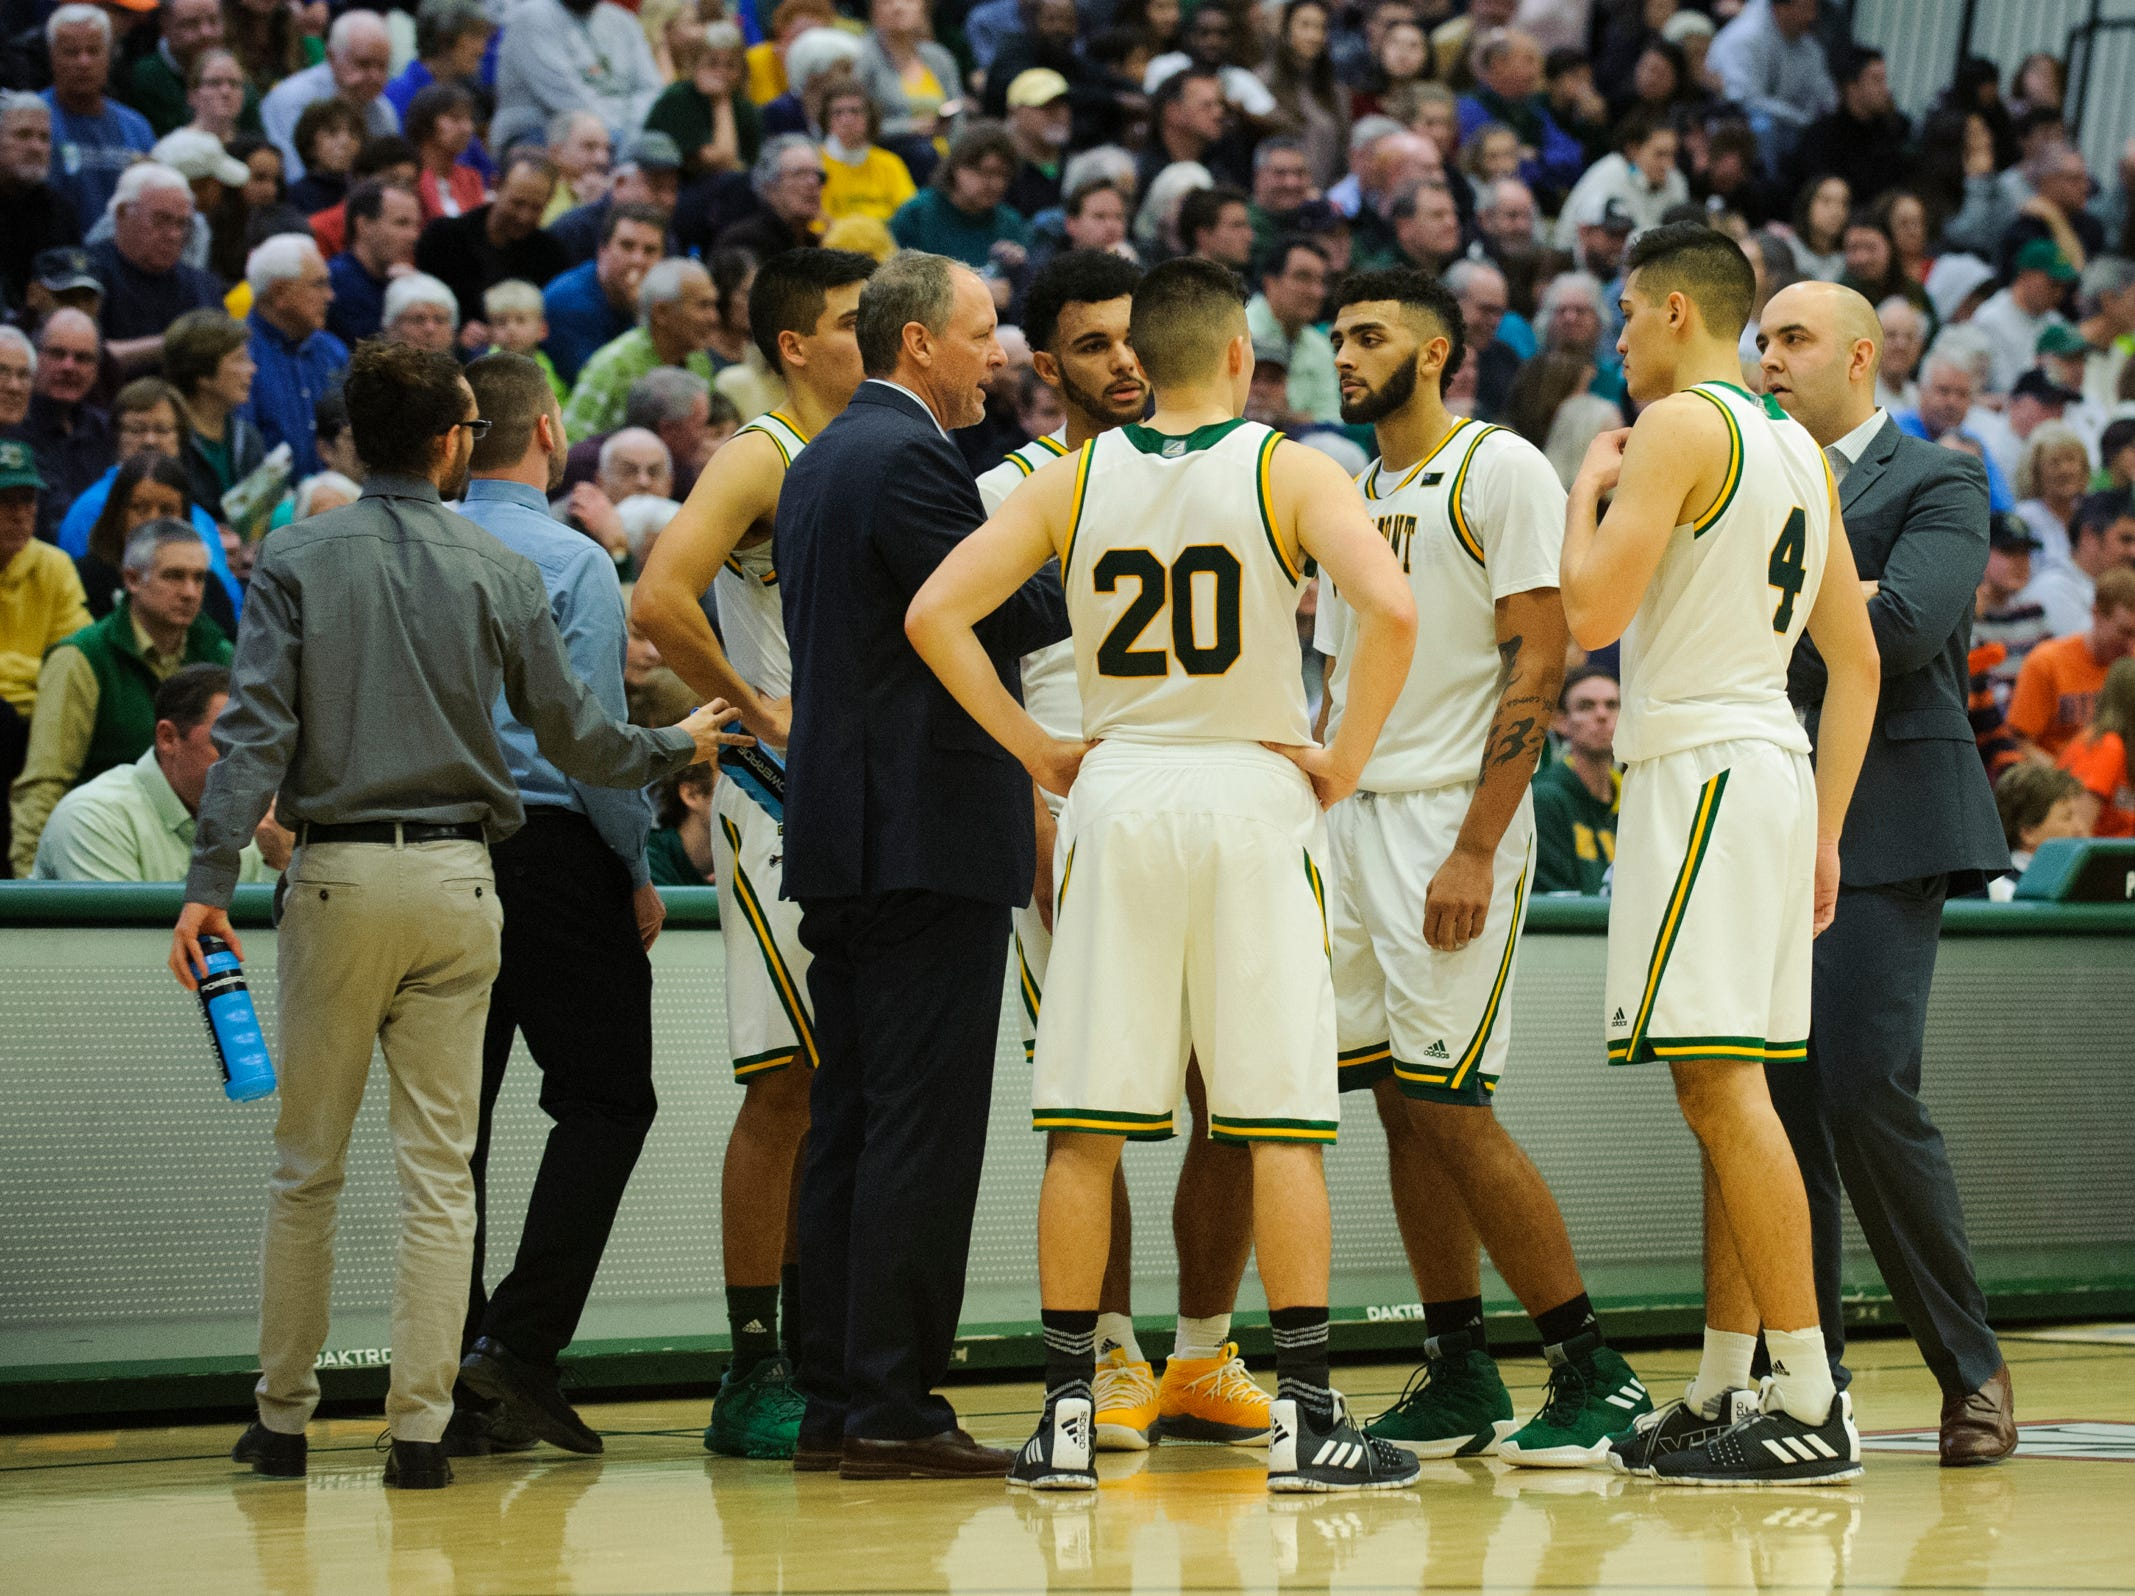 Vermont huddles together during a break in the action during the men's basketball game between the Bucknell Bison and the Vermont Catamounts at Patrick Gym on Sunday afternoon November 25, 2018 in Burlington.